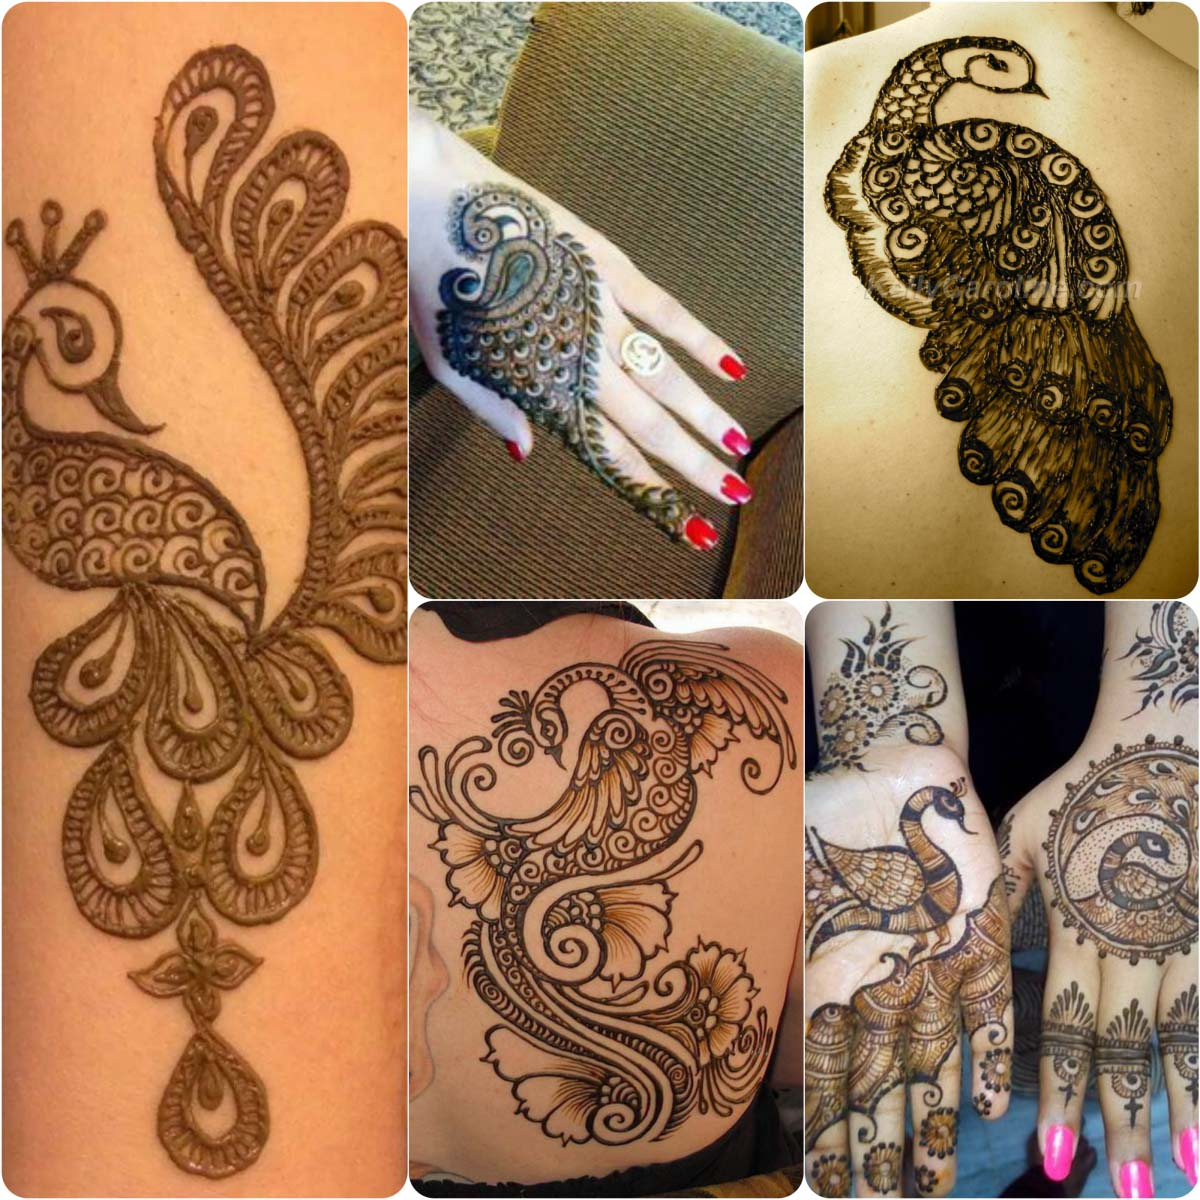 Mehndi design 2017 images - Enjoy Some Of Our Favorite Peacock Mehndi Designs From The Gallery If You Like Any Do Let Us Known In The Comment Section Below And Don T Forget To Visit